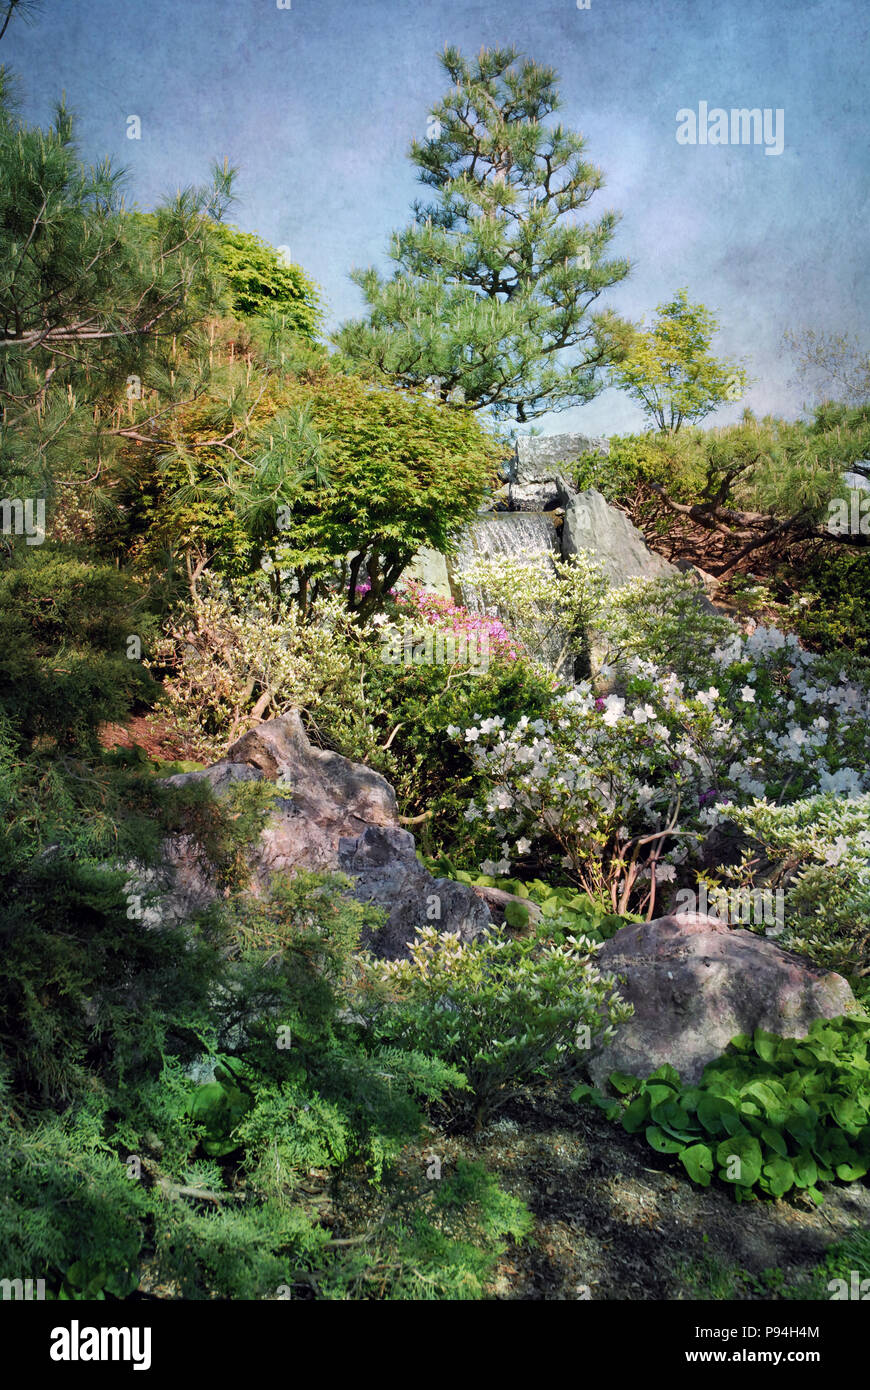 Painterly style backgroud scene with scenic garden and waterfall. Beautiful portrait background. Paint strokes and texture - Stock Image